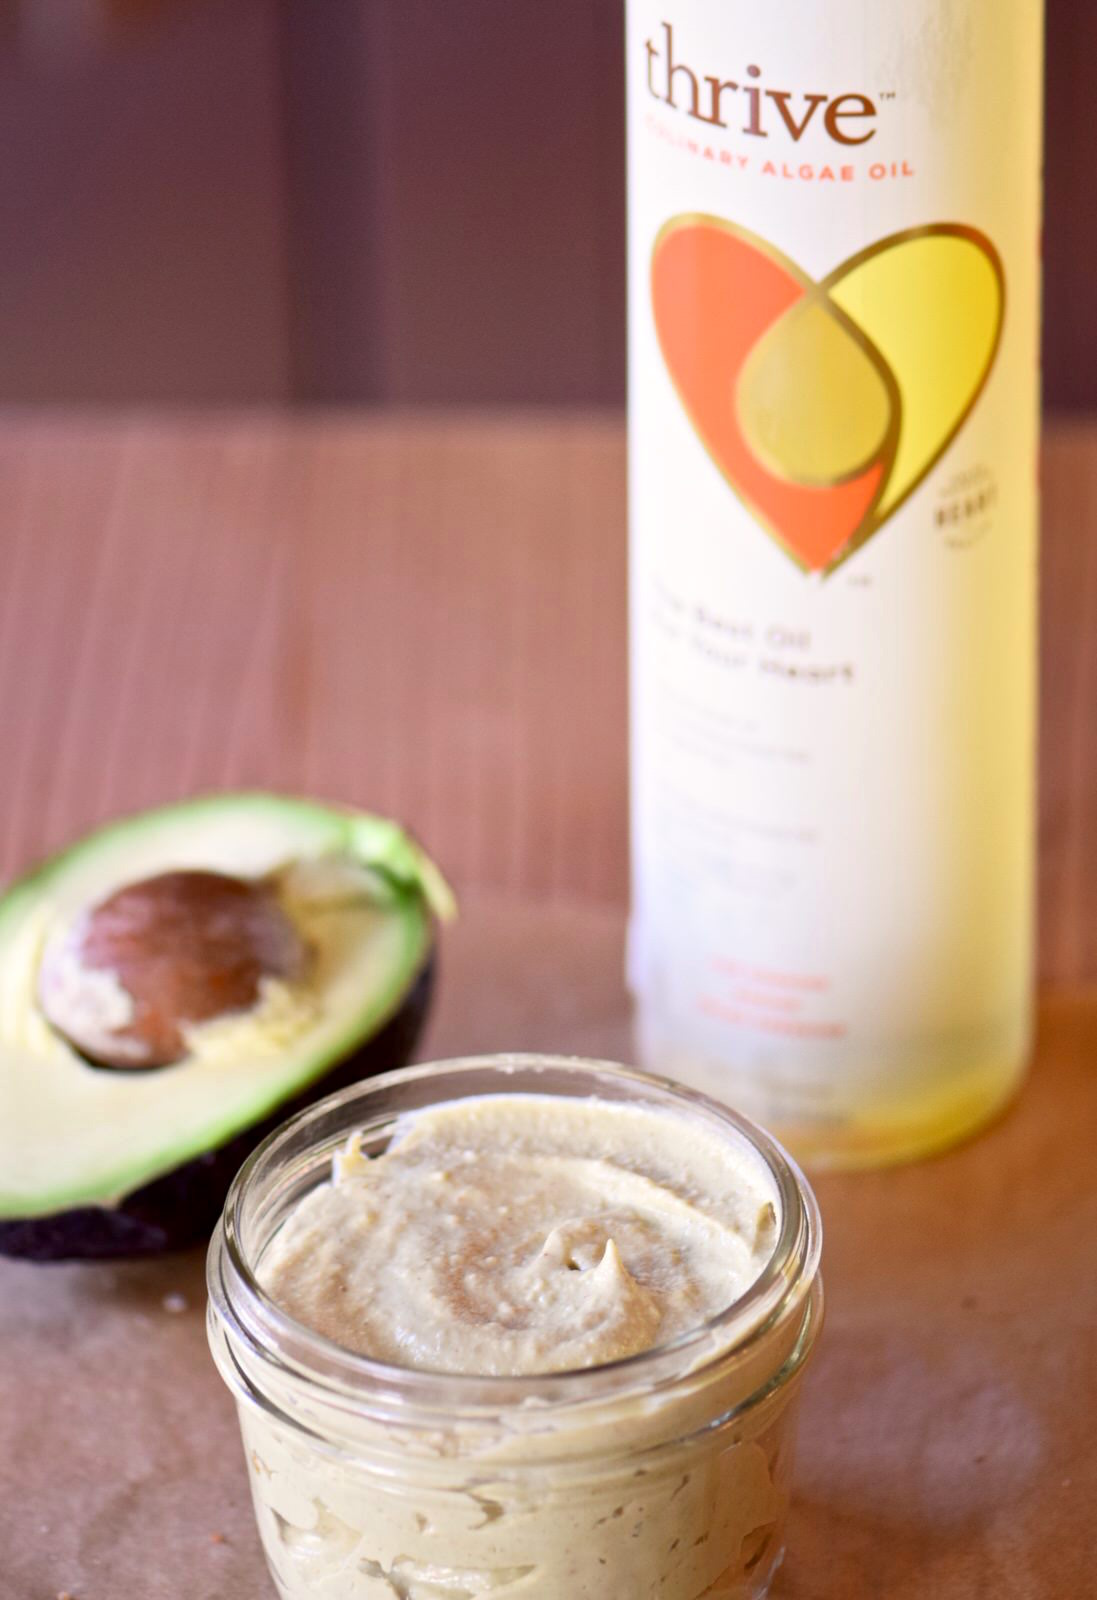 Avocado Tahini Sauce with Thrive Algae Oil